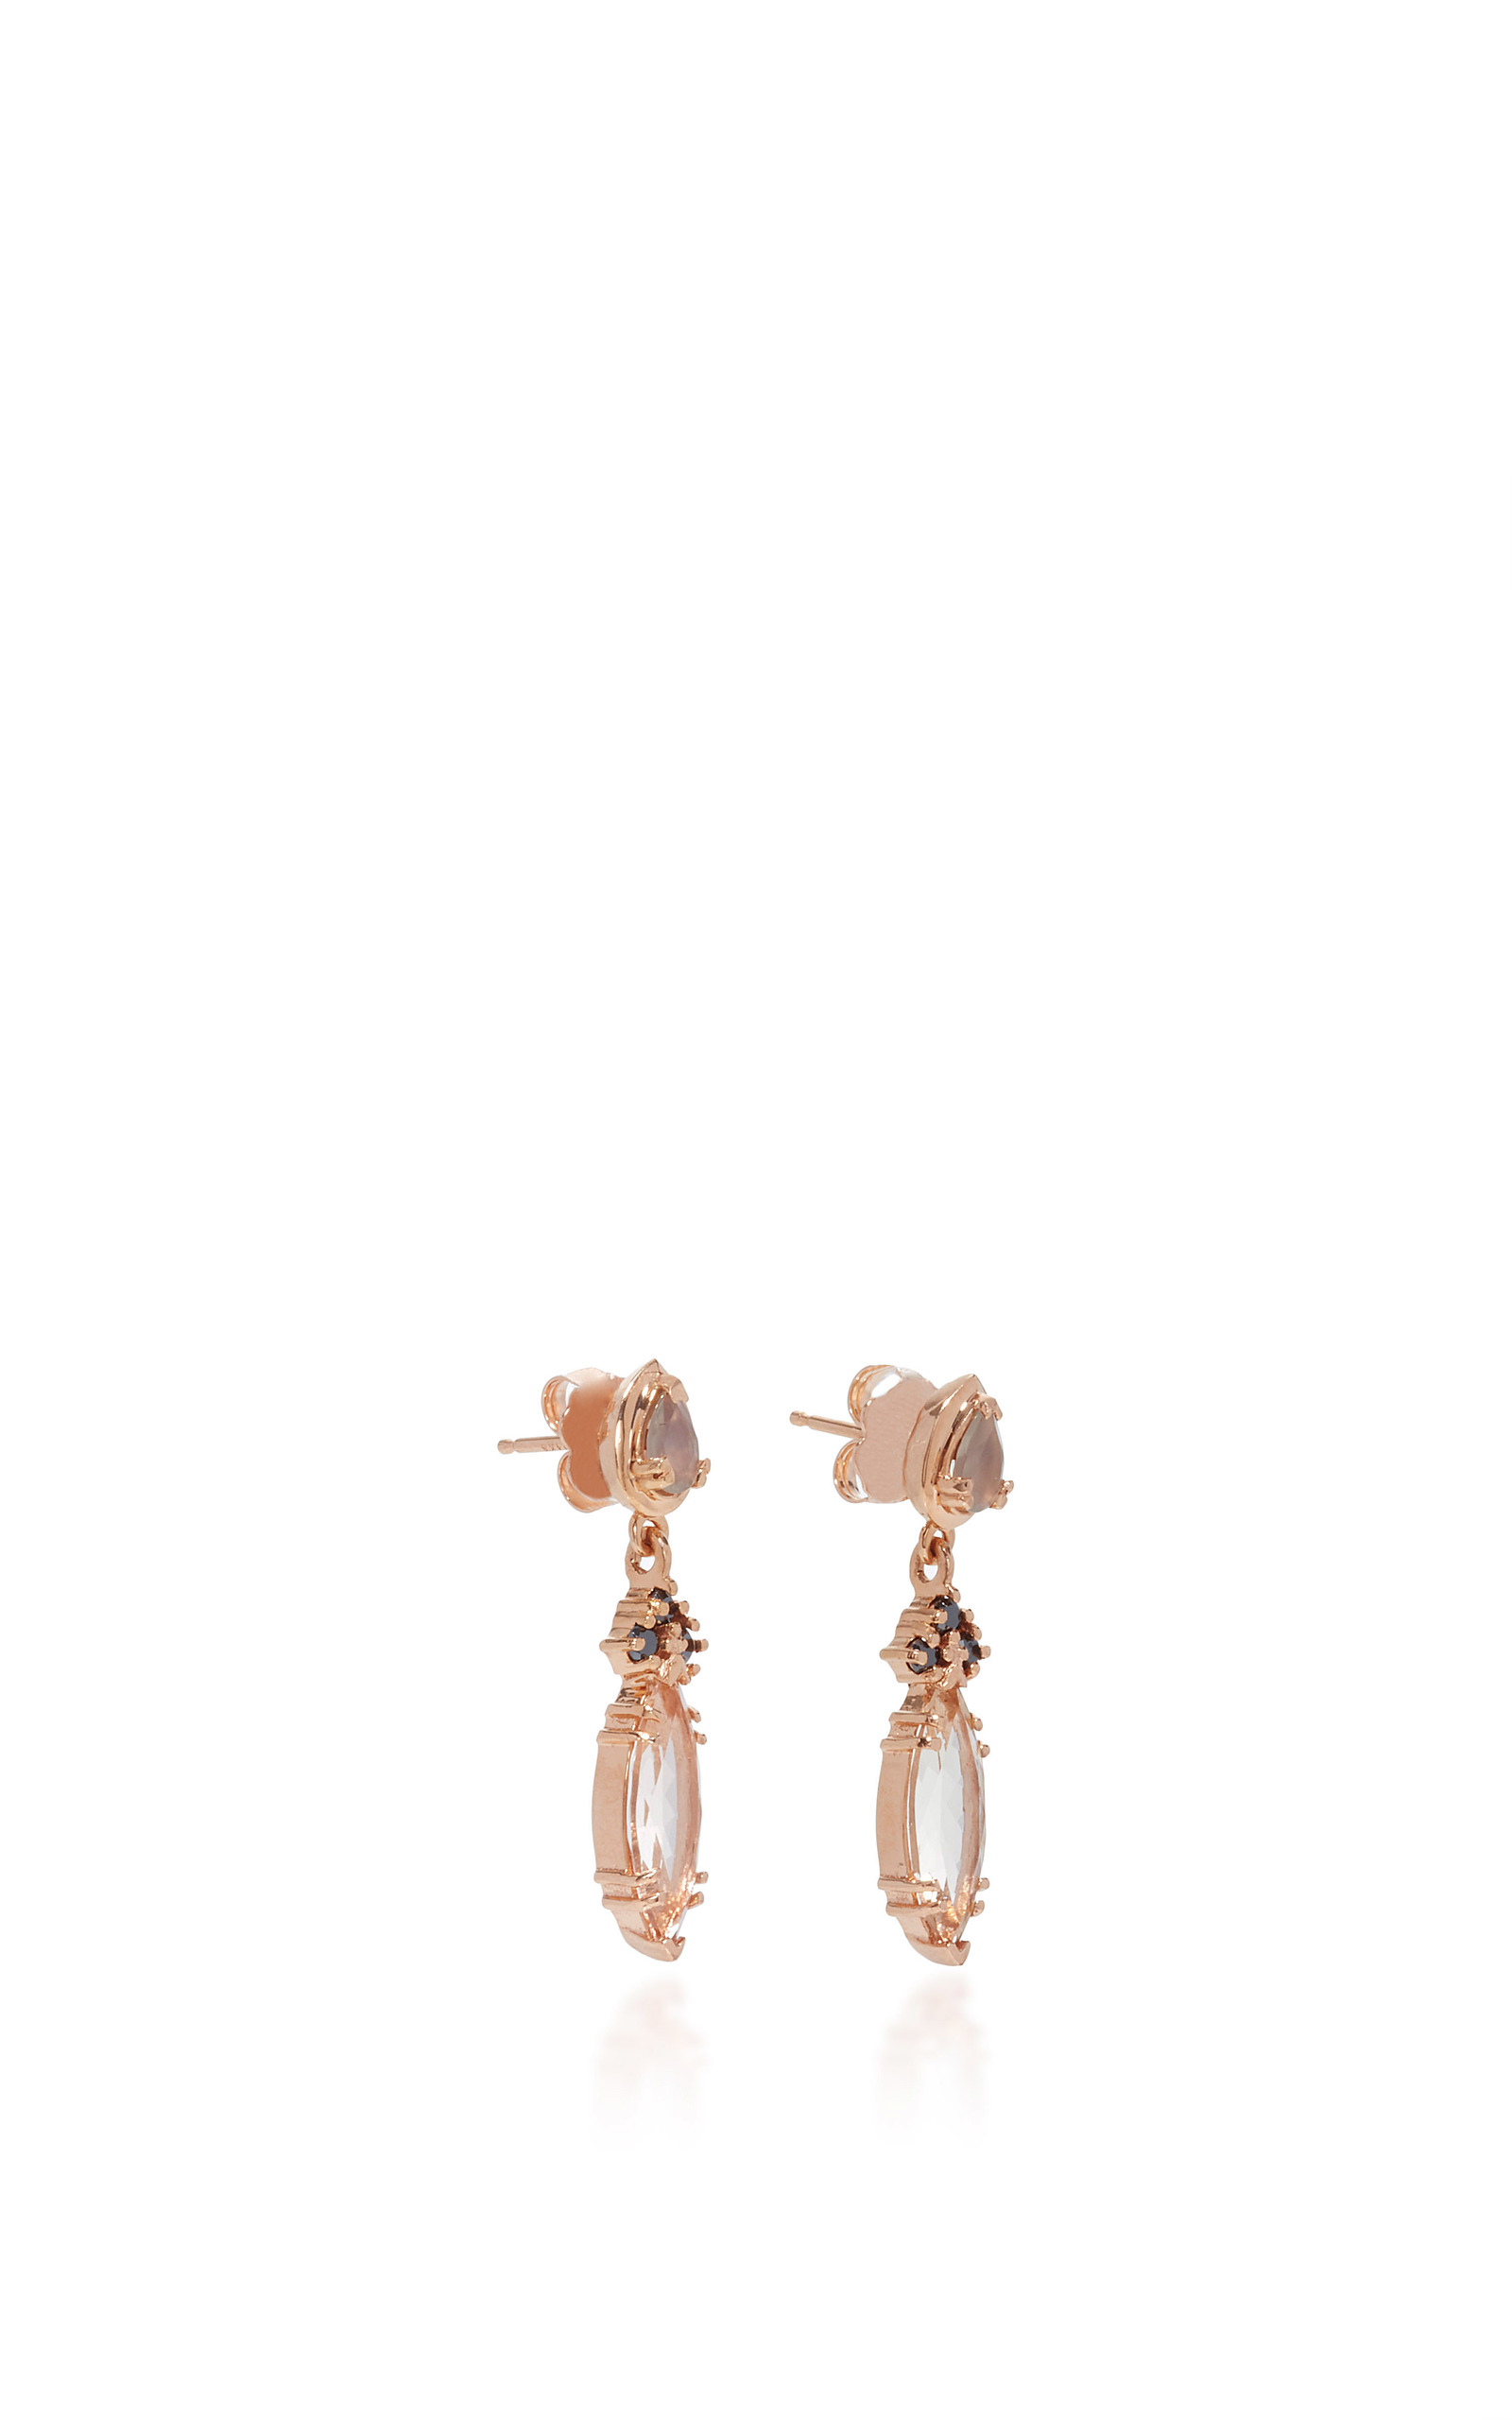 products teeny marquise minimalist earrings tiny stud fetheray emerald